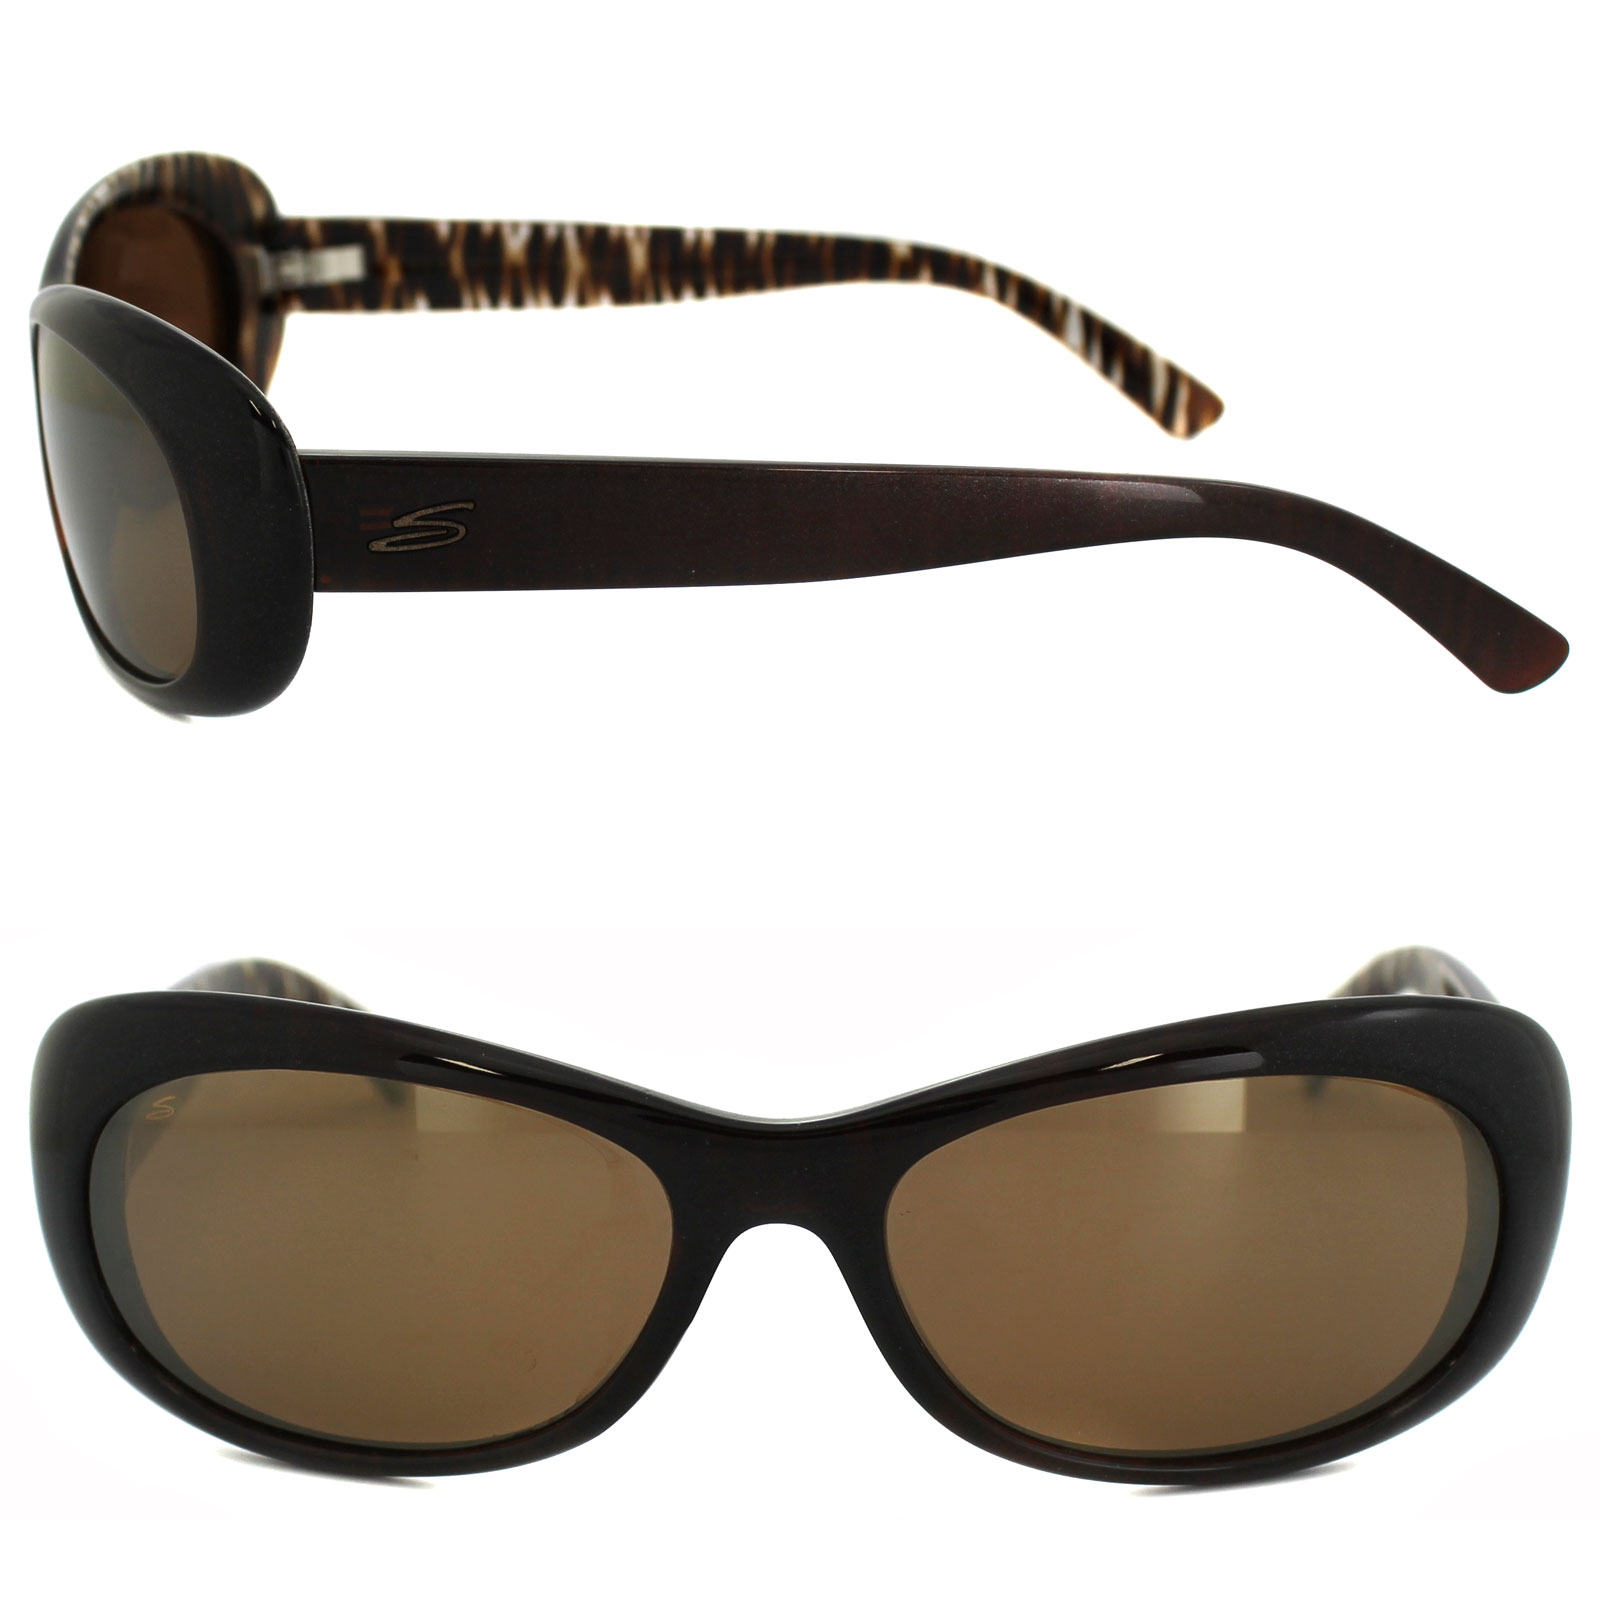 Serengeti Sunglasses Bella 7630 Bronze Zebra Drivers Gold Mirror Polarized